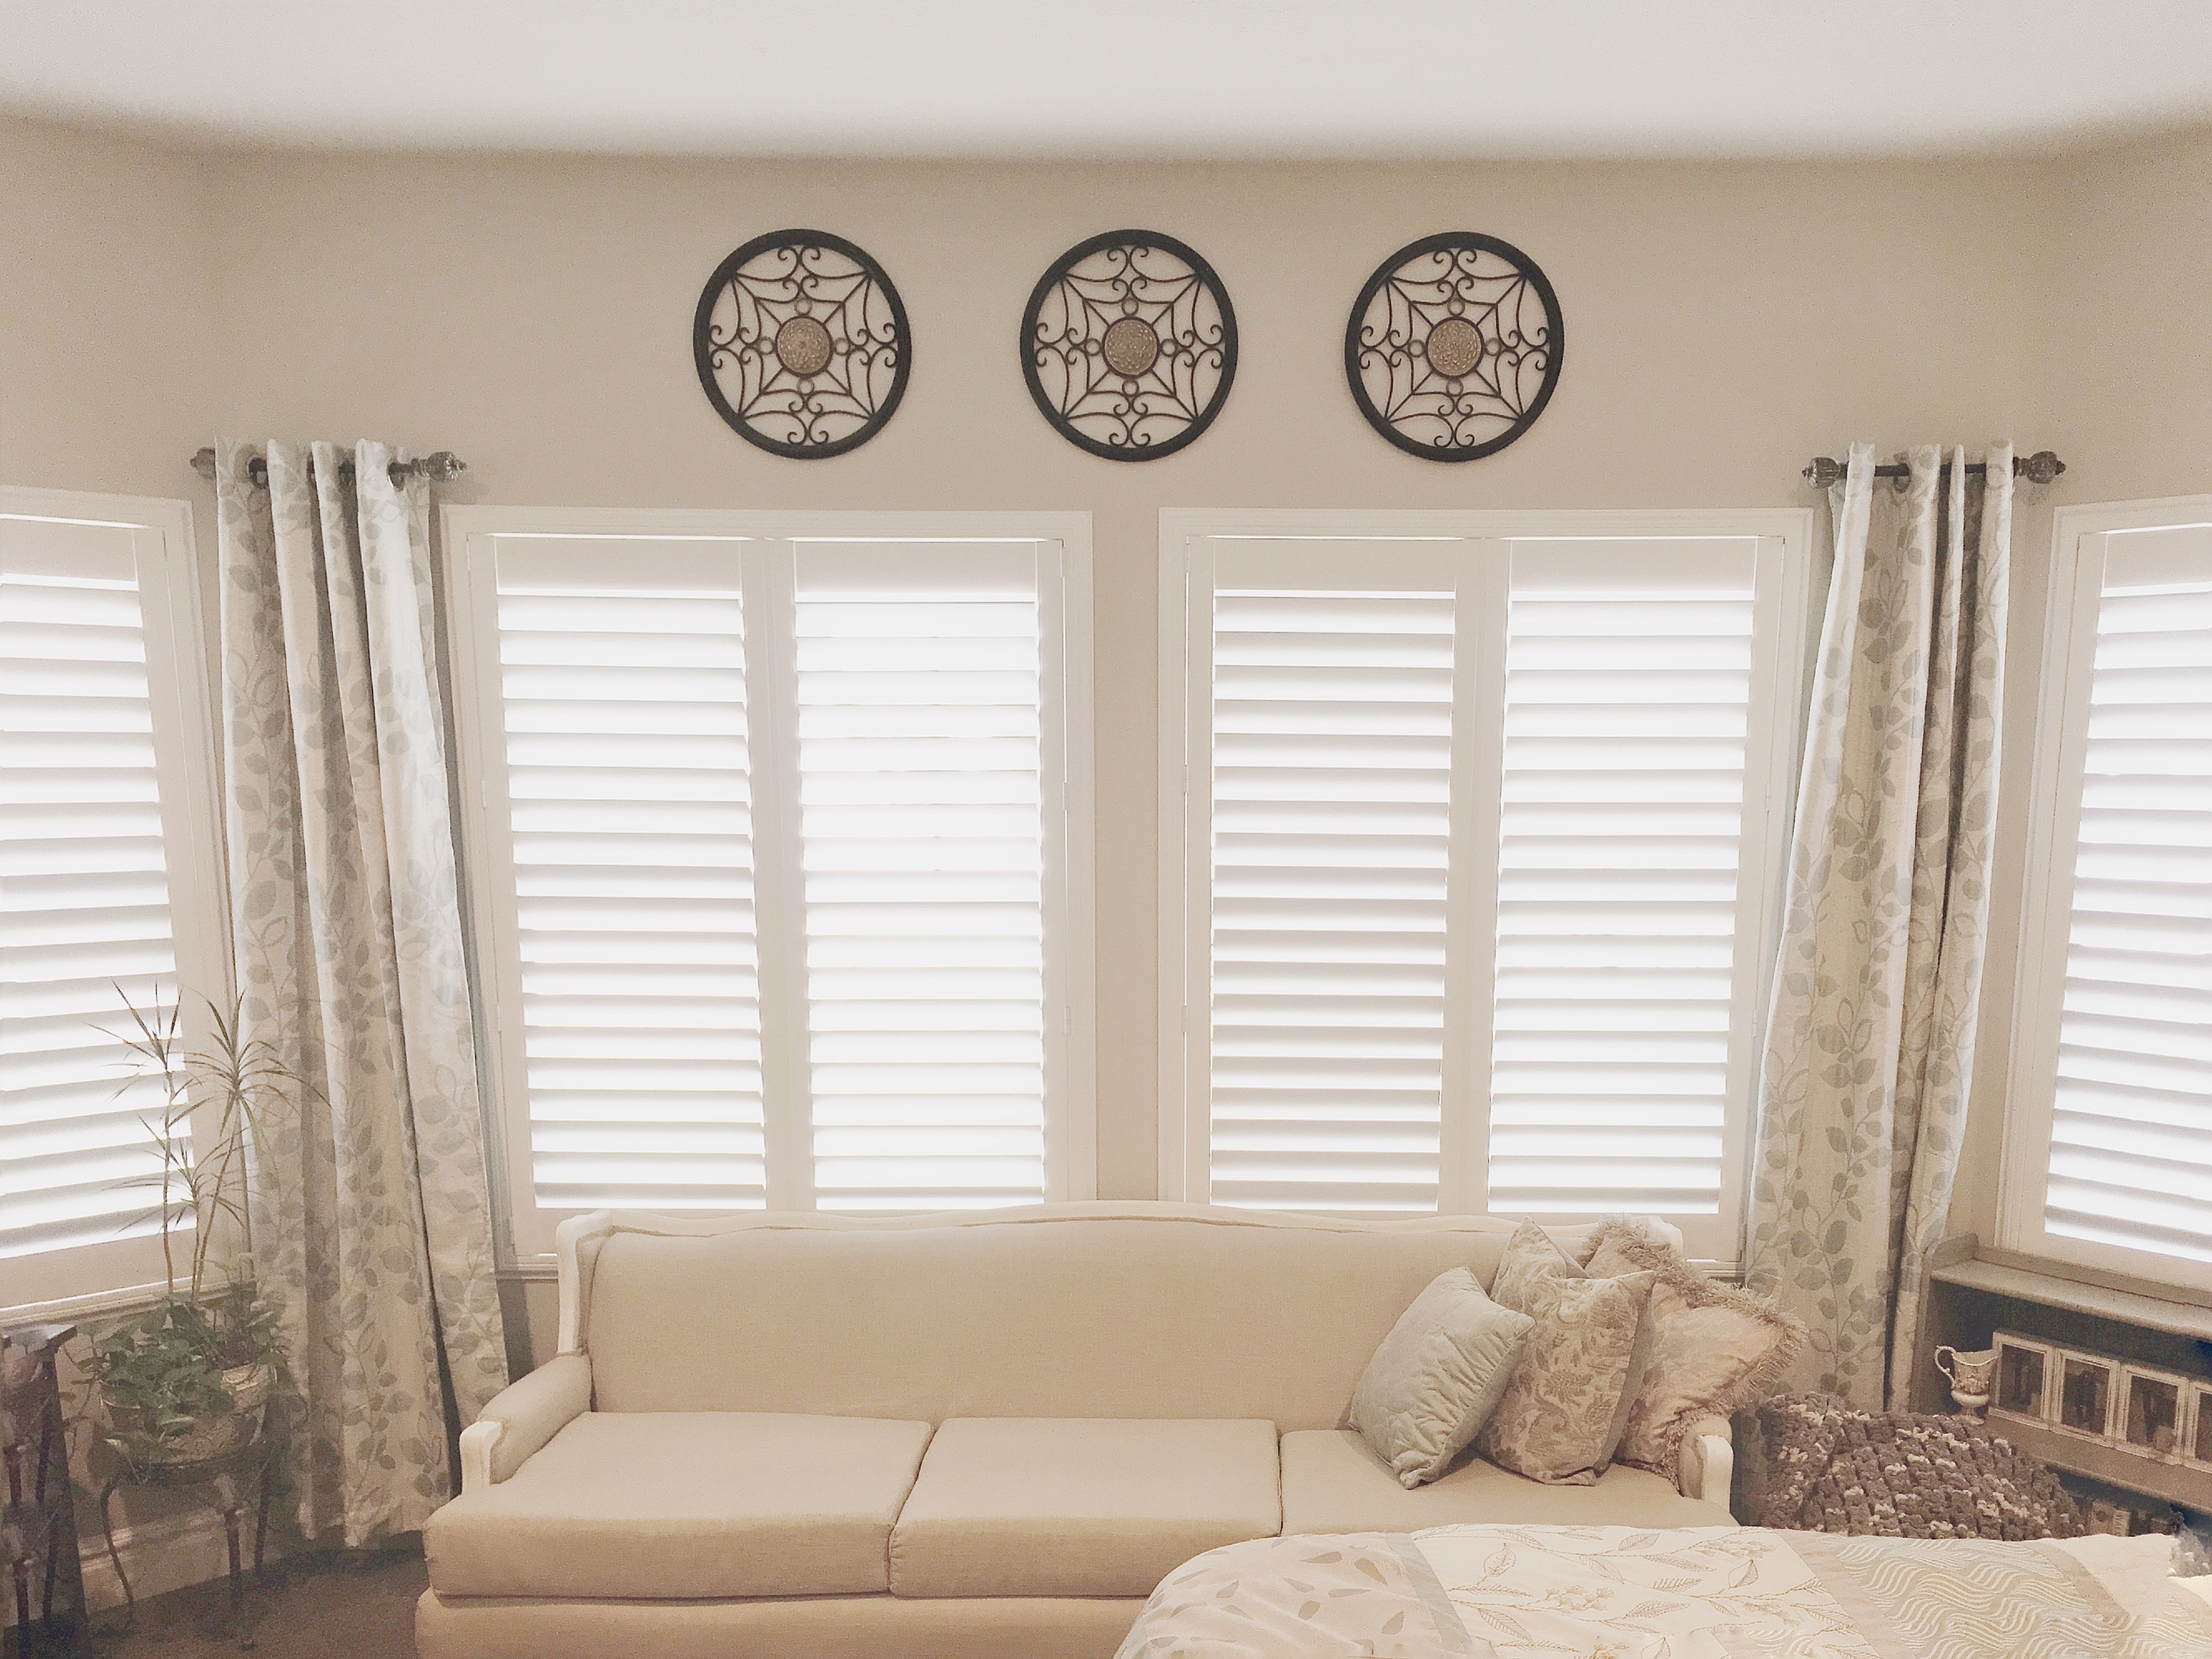 our the transformation via blinds code com room after woven before and window discount select shades inspired wood bamboo